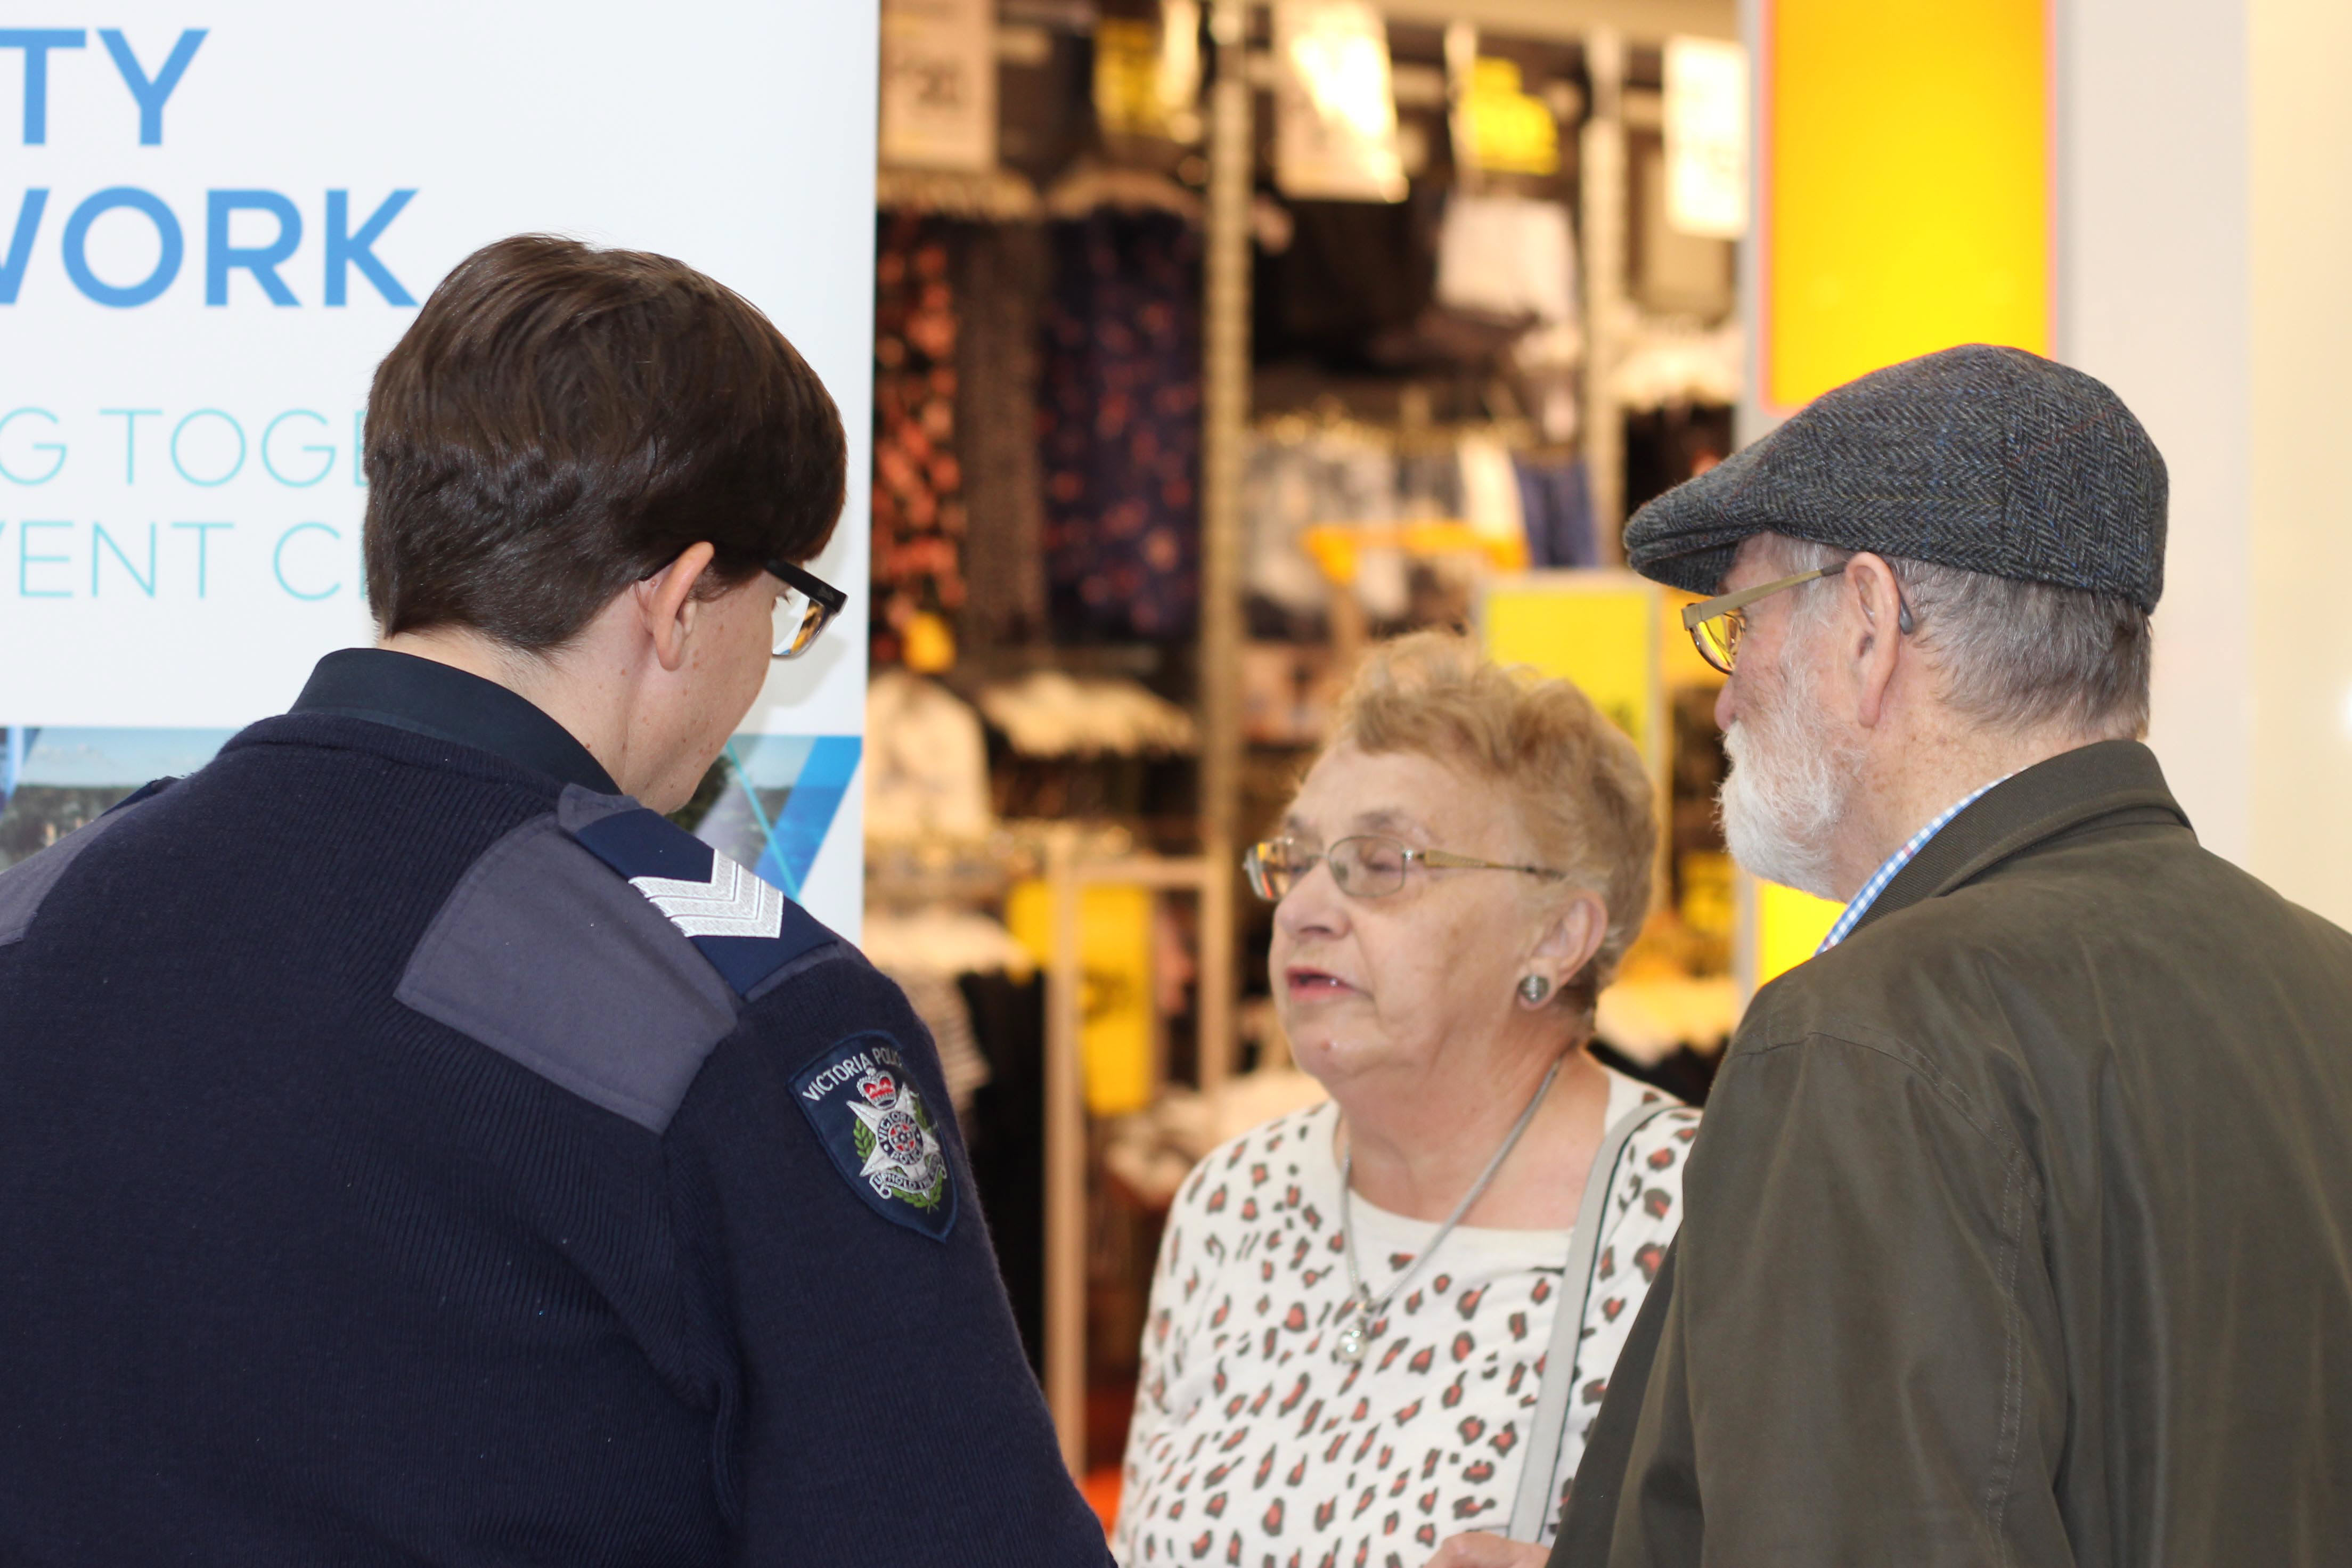 A police officer chats with a man and a woman. The woman is wearing an animal print top and the man is wearing a peak cap and brown jacket